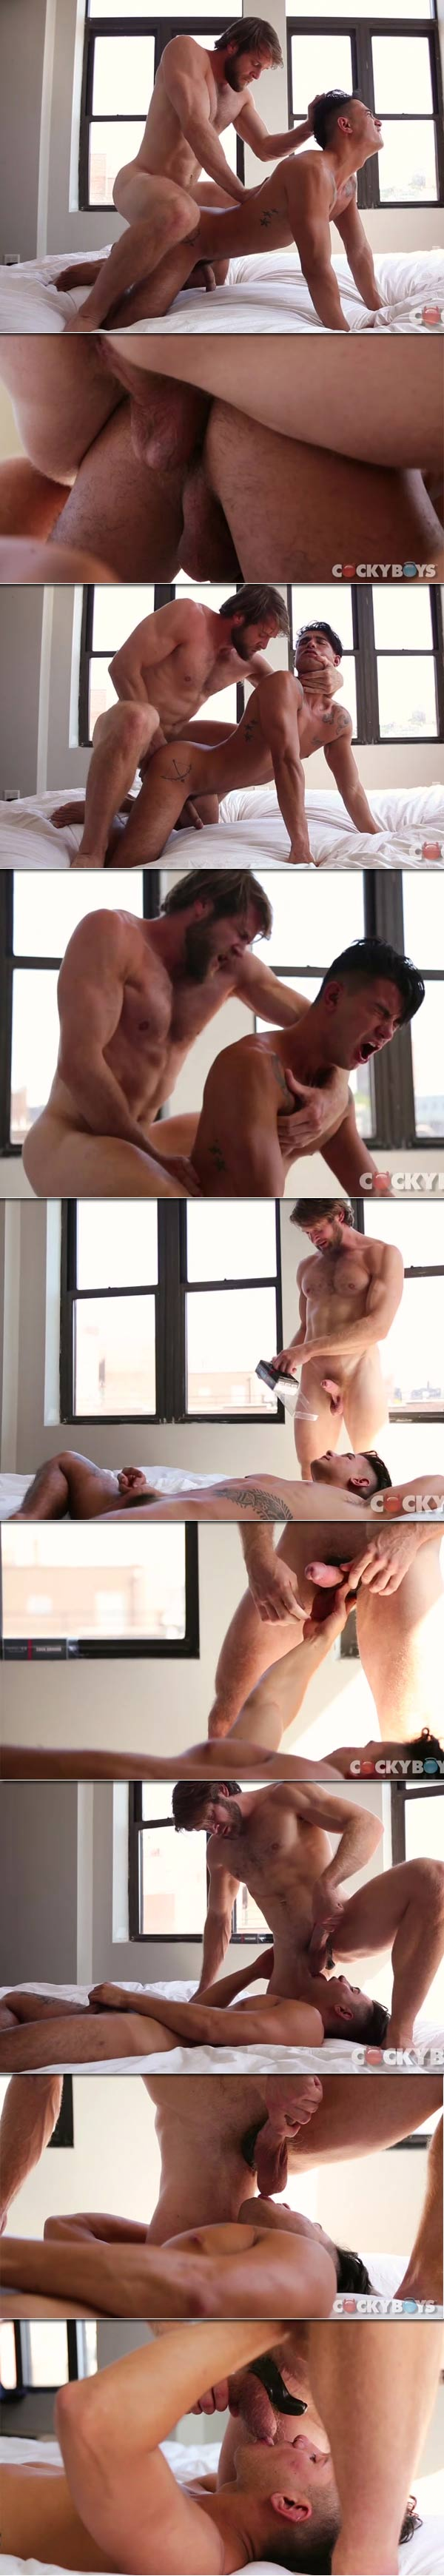 Colby Keller Hammers Ricky Roman at CockyBoys.com